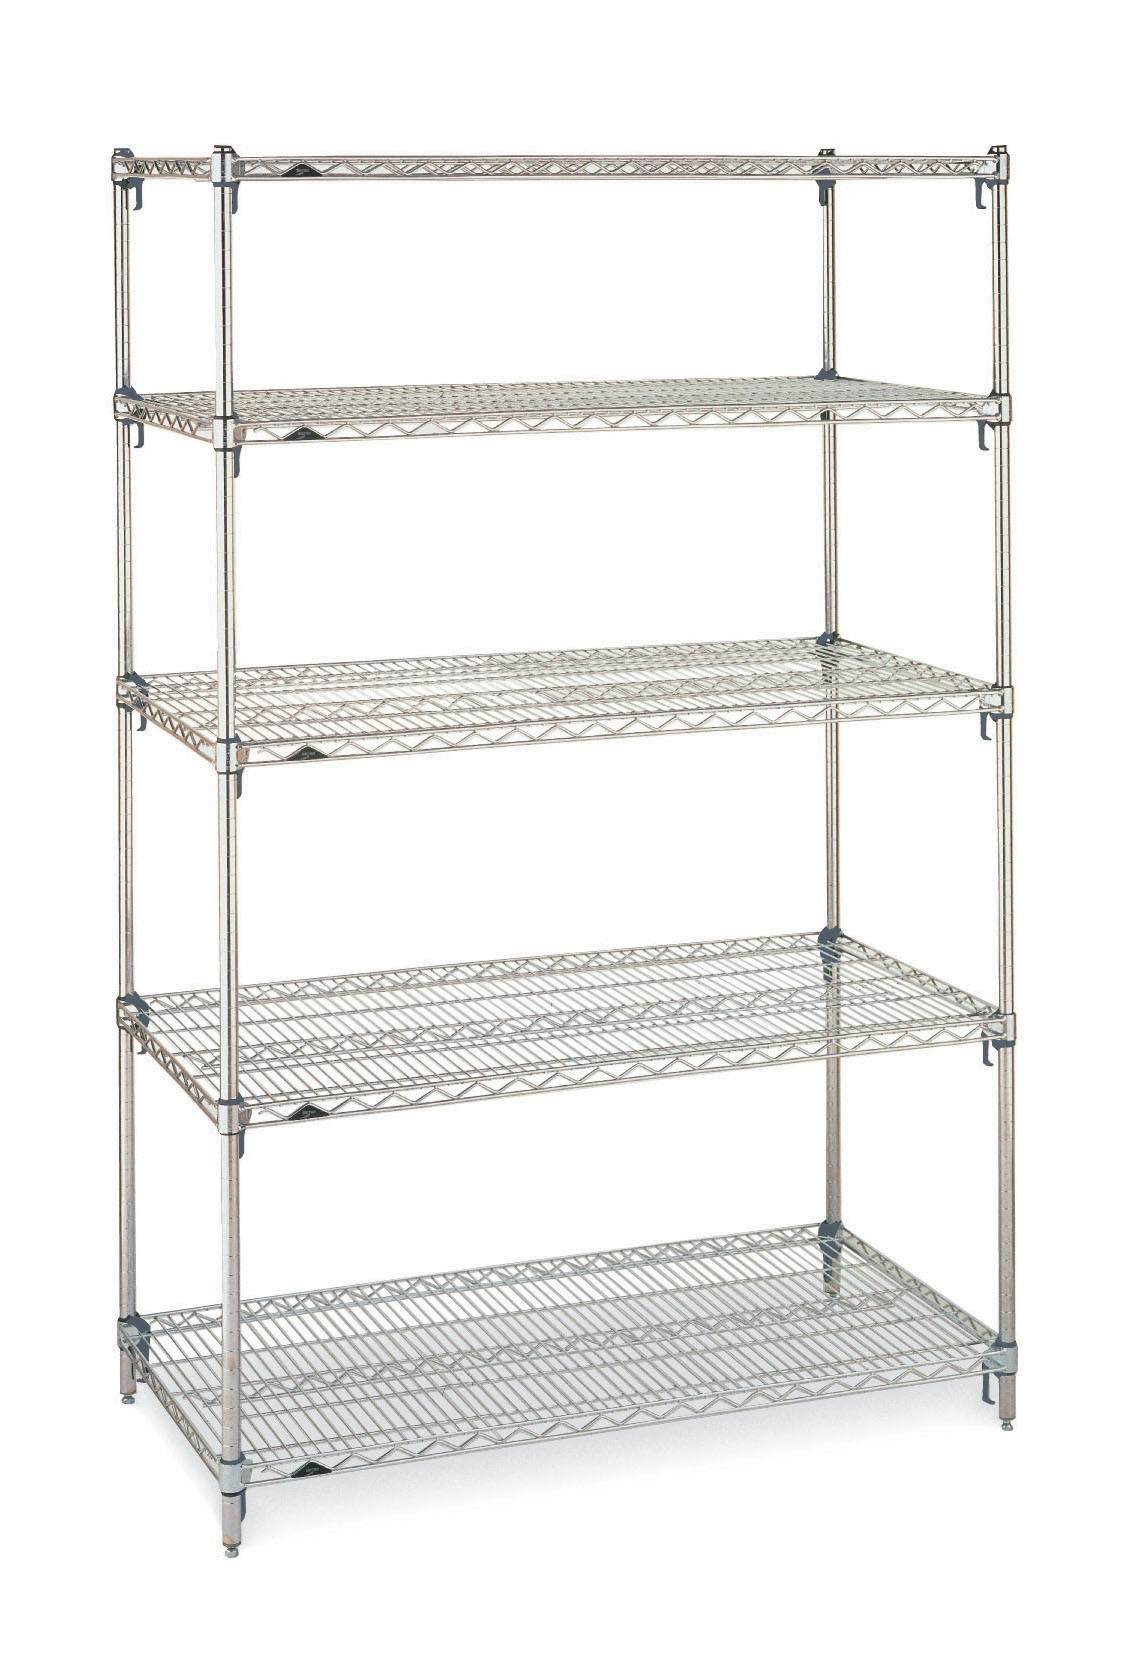 Metro Super Erecta 3 Shelving 5 Tier Wire Shelves